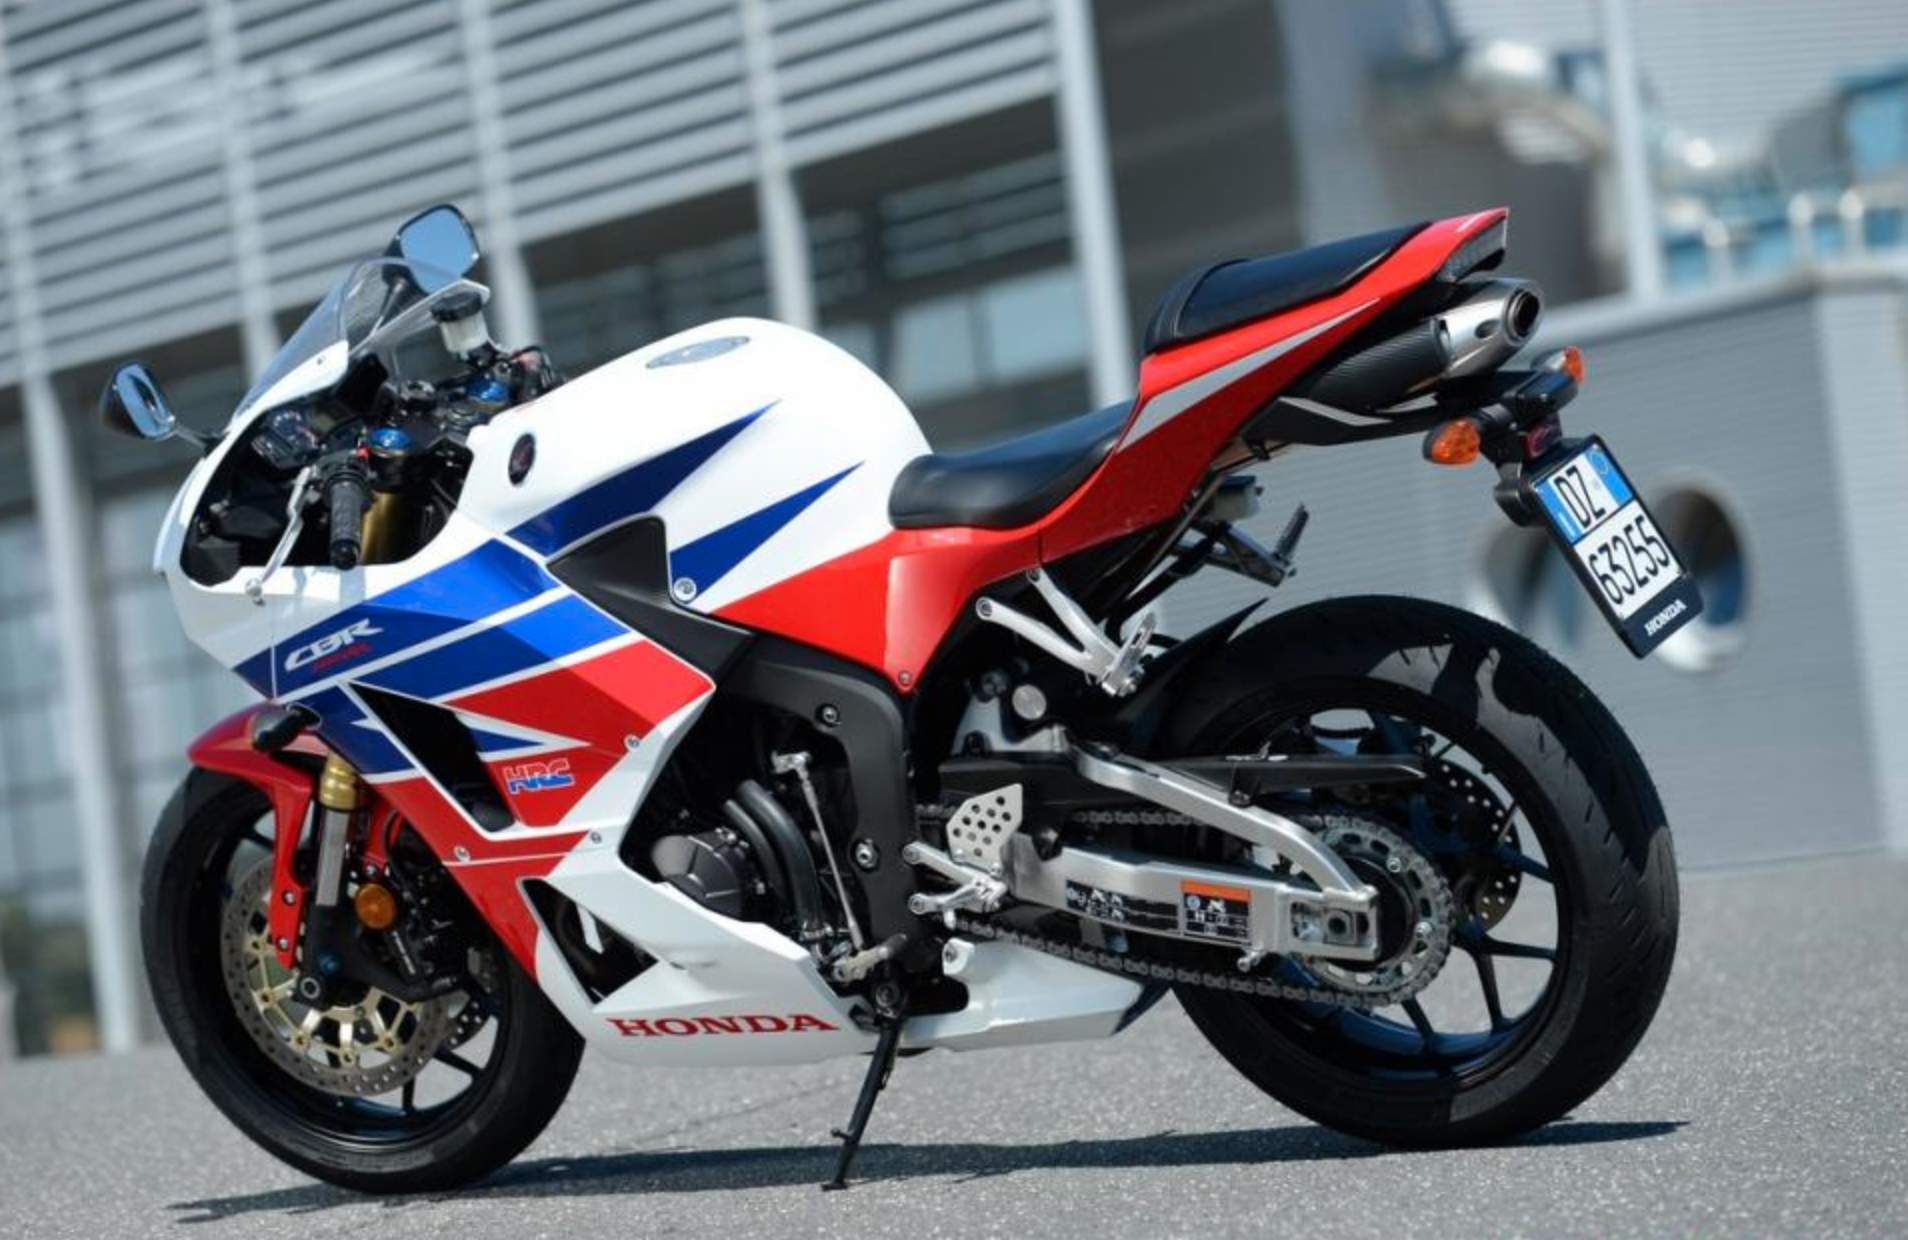 The Honda Cbr600rr R Will Be Revealed In August Maybe Webbikeworld